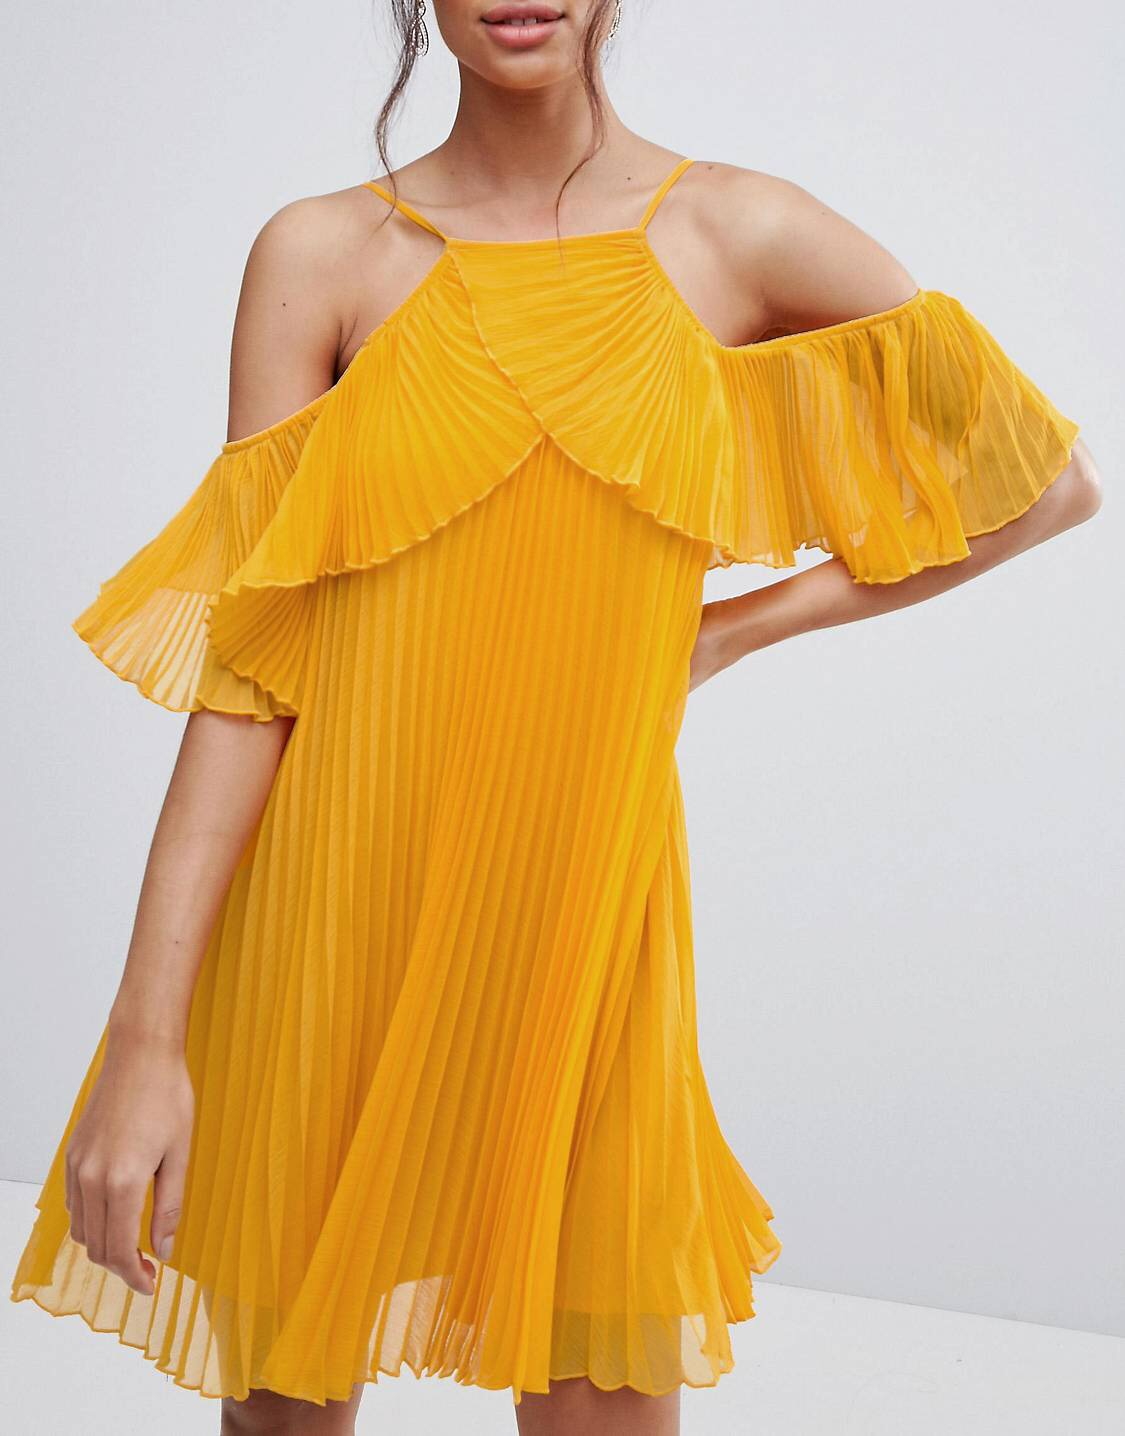 £24 ASOS pleated Mini Dress - Dang these modest tops are popping. Y'all know I don't shy away from the layering. Mustard and Navy are my colour combos of the season.